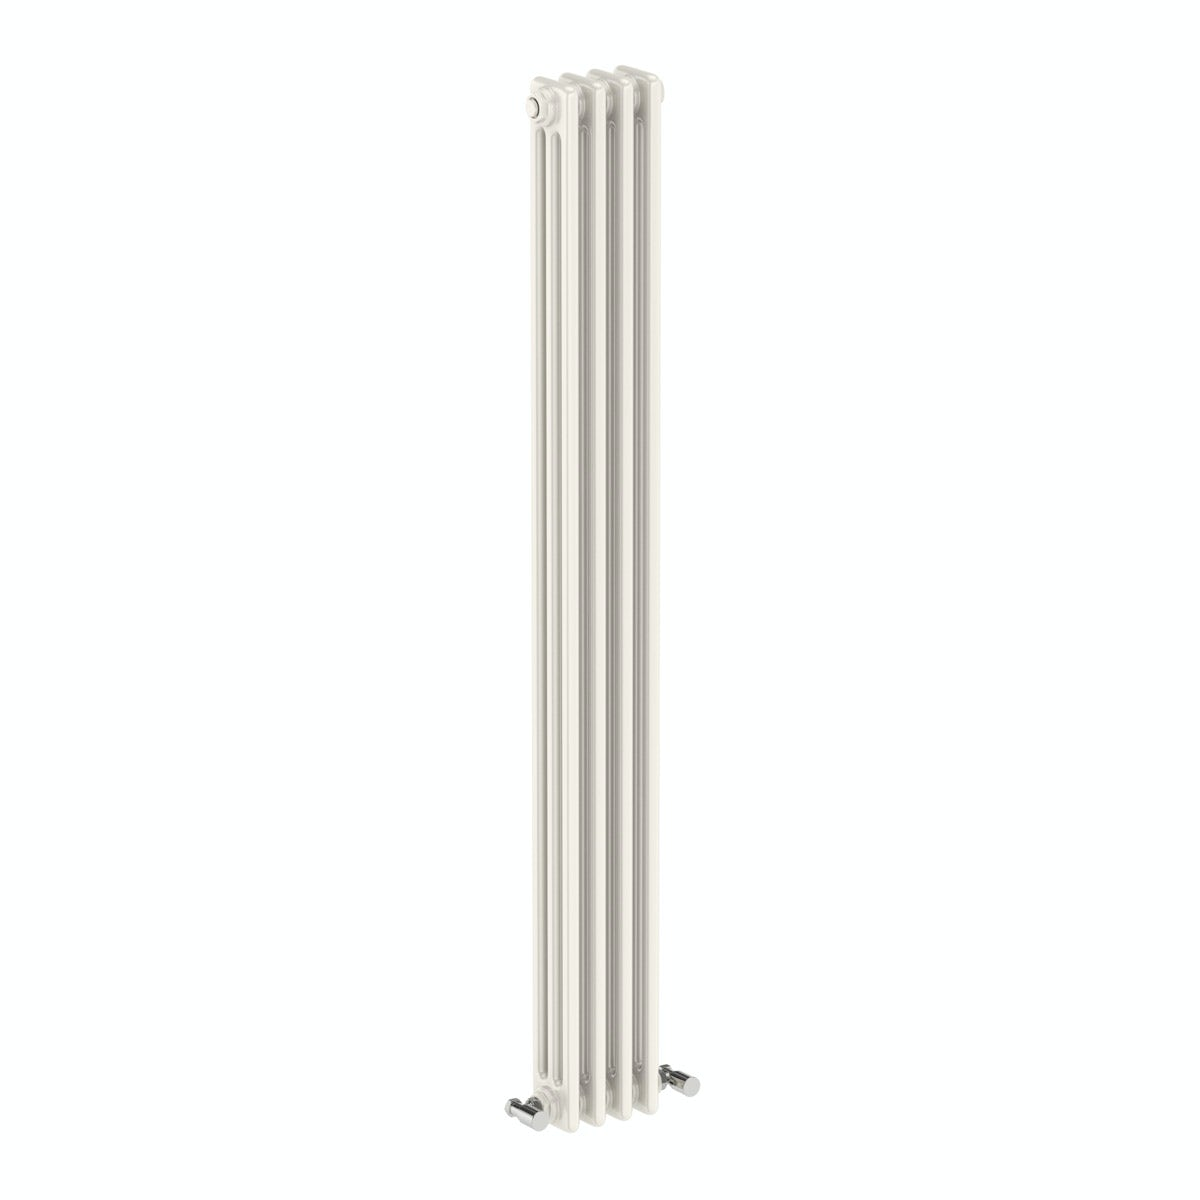 The Bath Co. Vertical white triple column radiator 1500 x 200